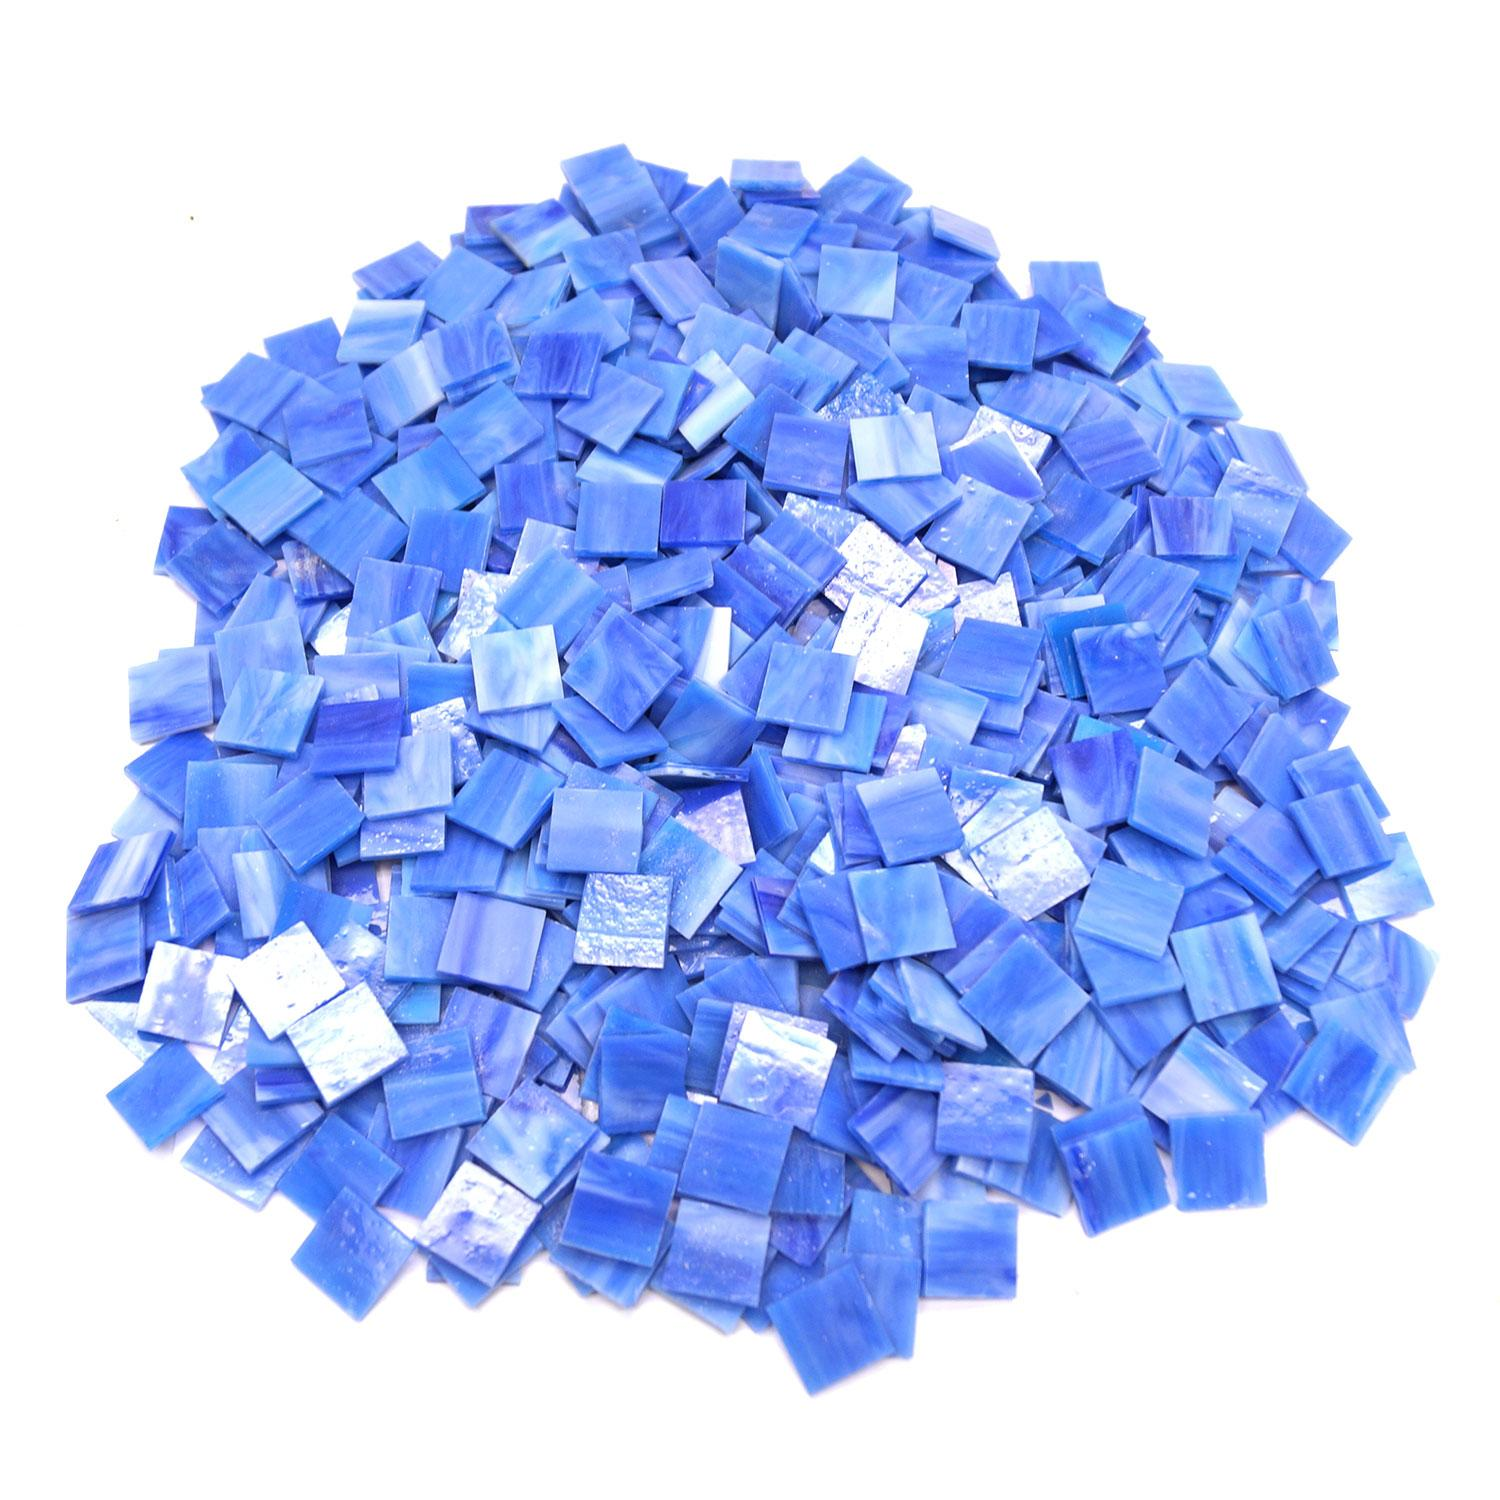 3/4 Blue Opalescent Stained Glass Chips - 700 Pieces